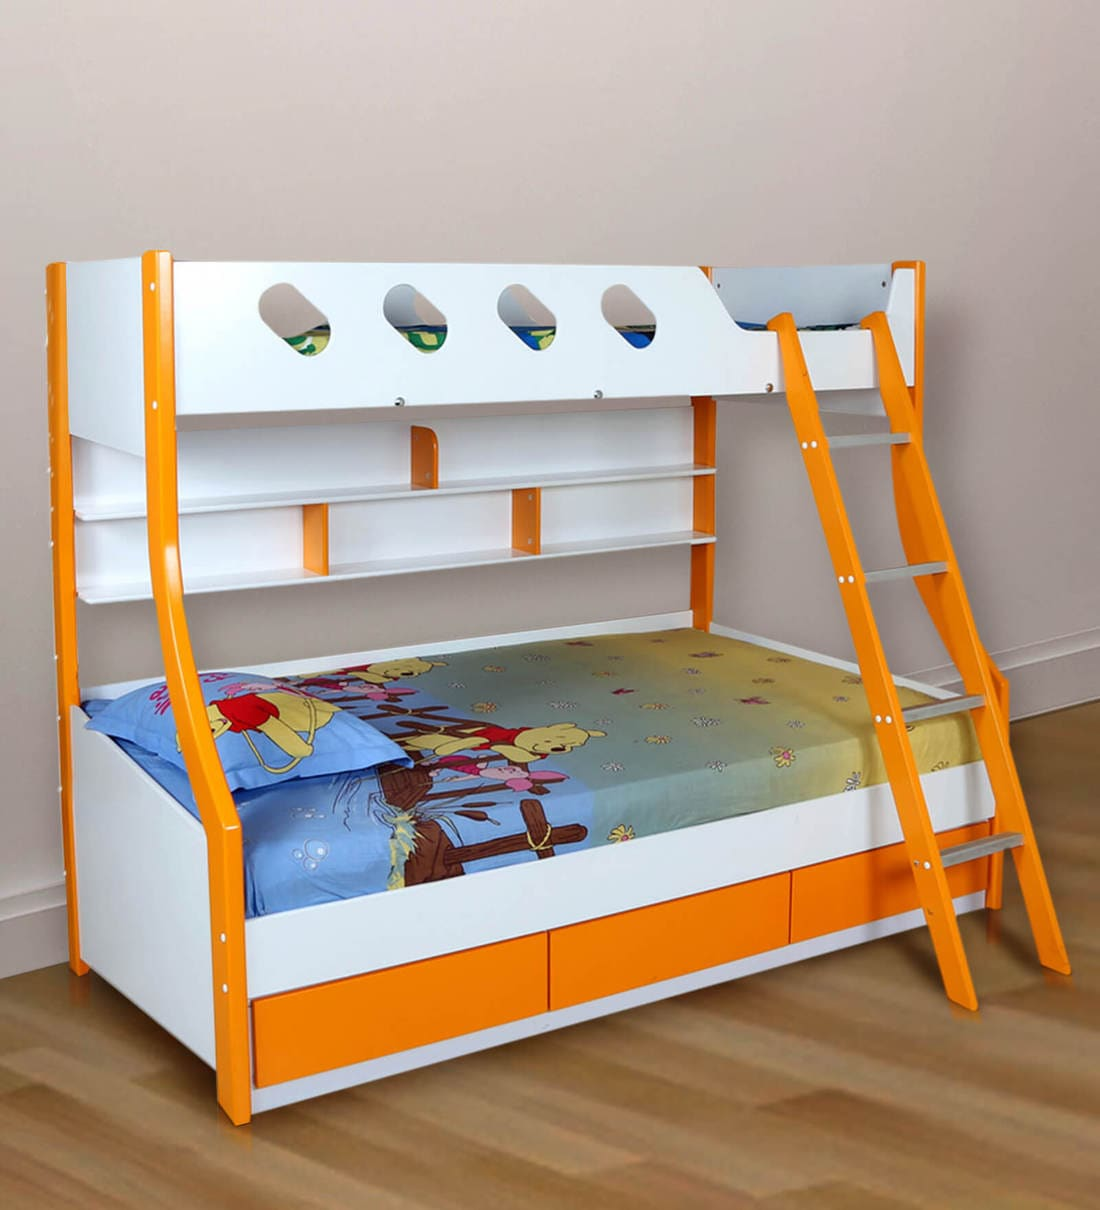 Buy Deccan Bunk Bed in Orange Colour by HomeTown Online - Standard Bunk  Beds - Bunk Beds - Kids Furniture - Pepperfry Product